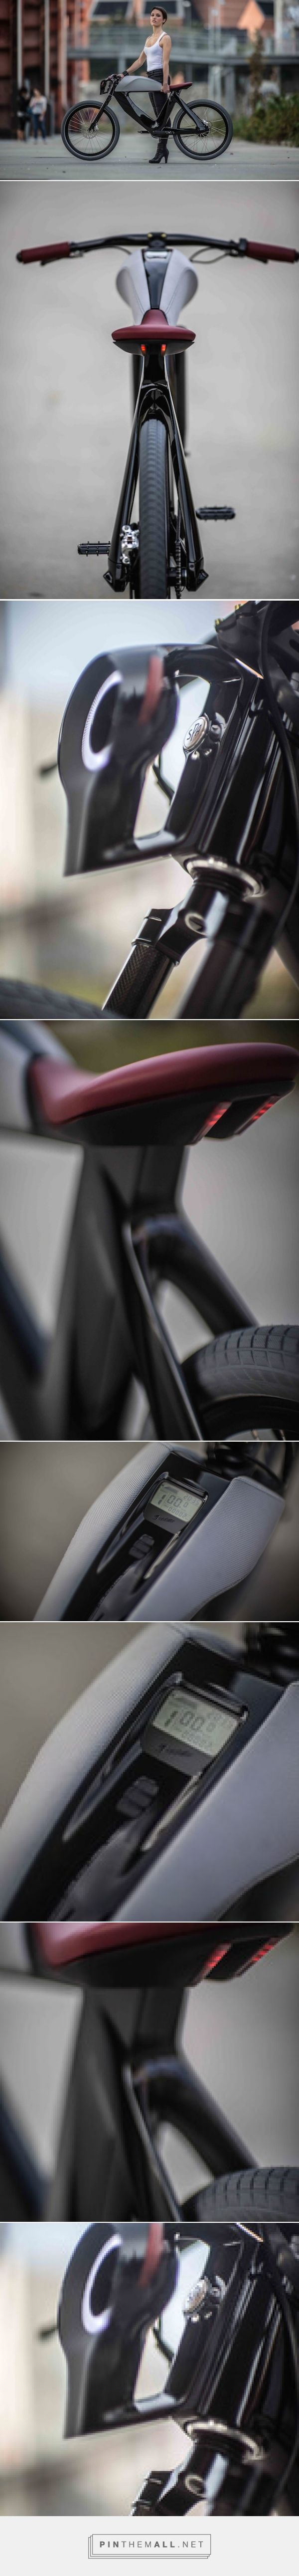 Black Electric Bike – Fubiz Media - created on 2015-07-17 18:53:02